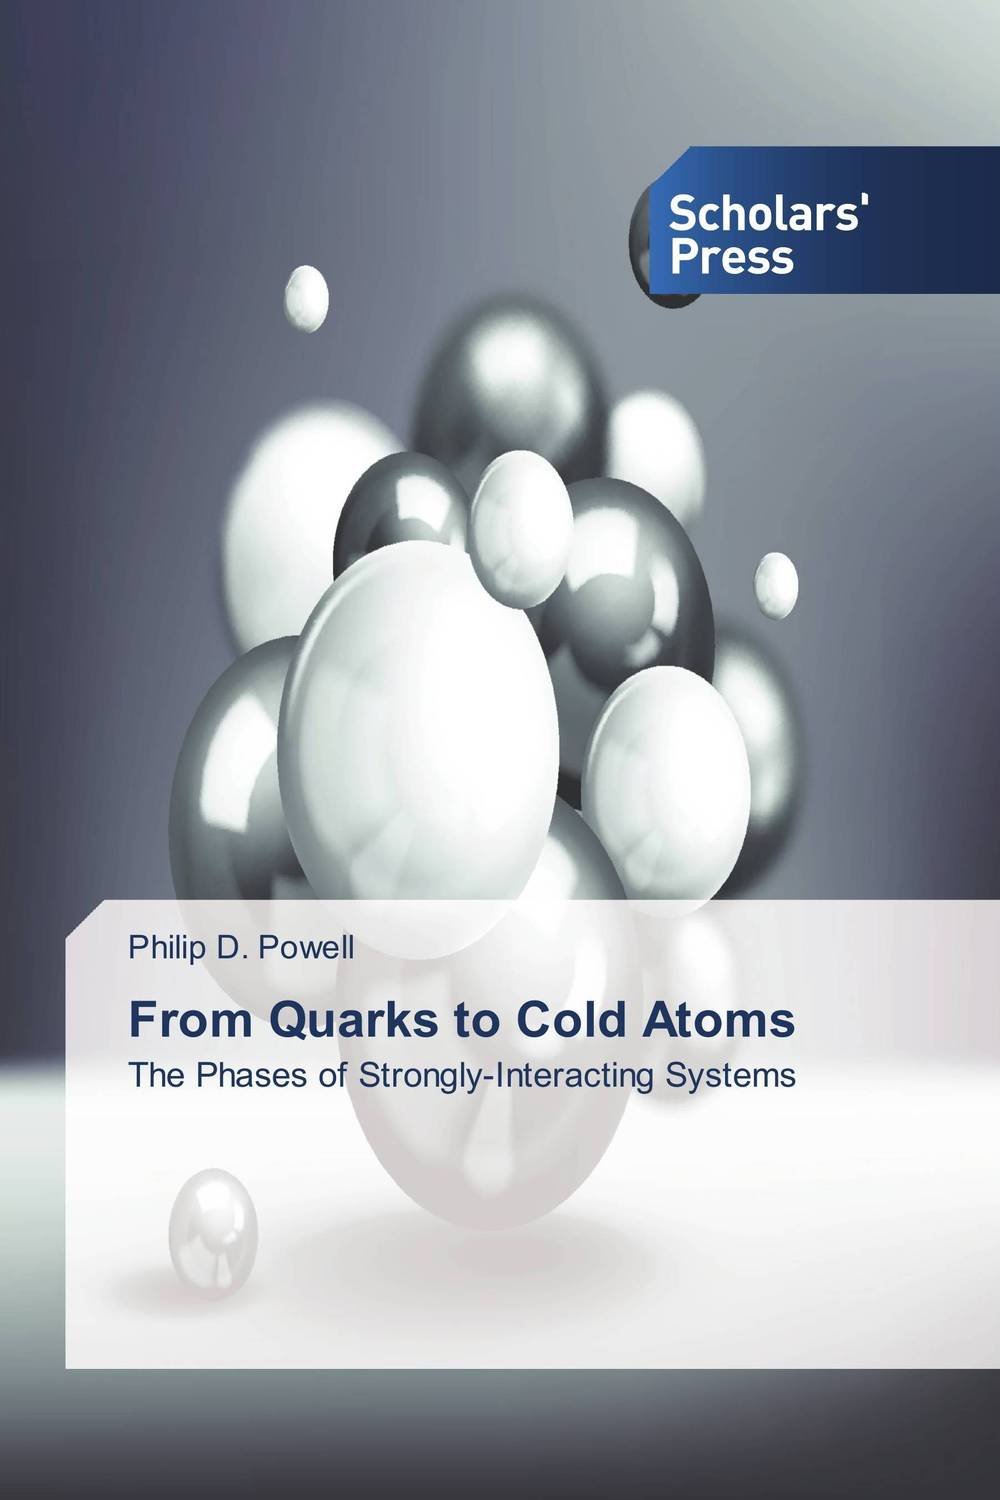 From Quarks to Cold Atoms